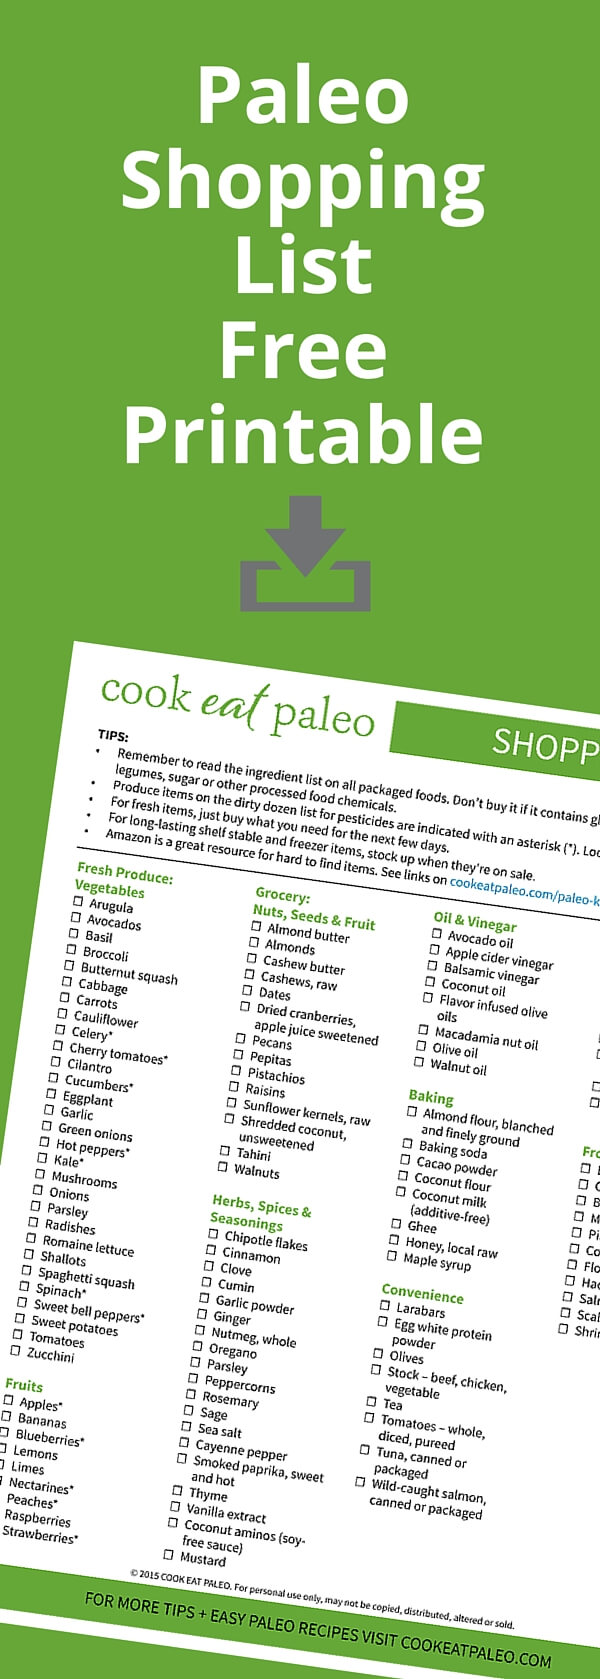 Stocking a gluten-free, grain-free, paleo pantry can be a little intimidating at first. Here's a list of what to stock in your paleo kitchen.